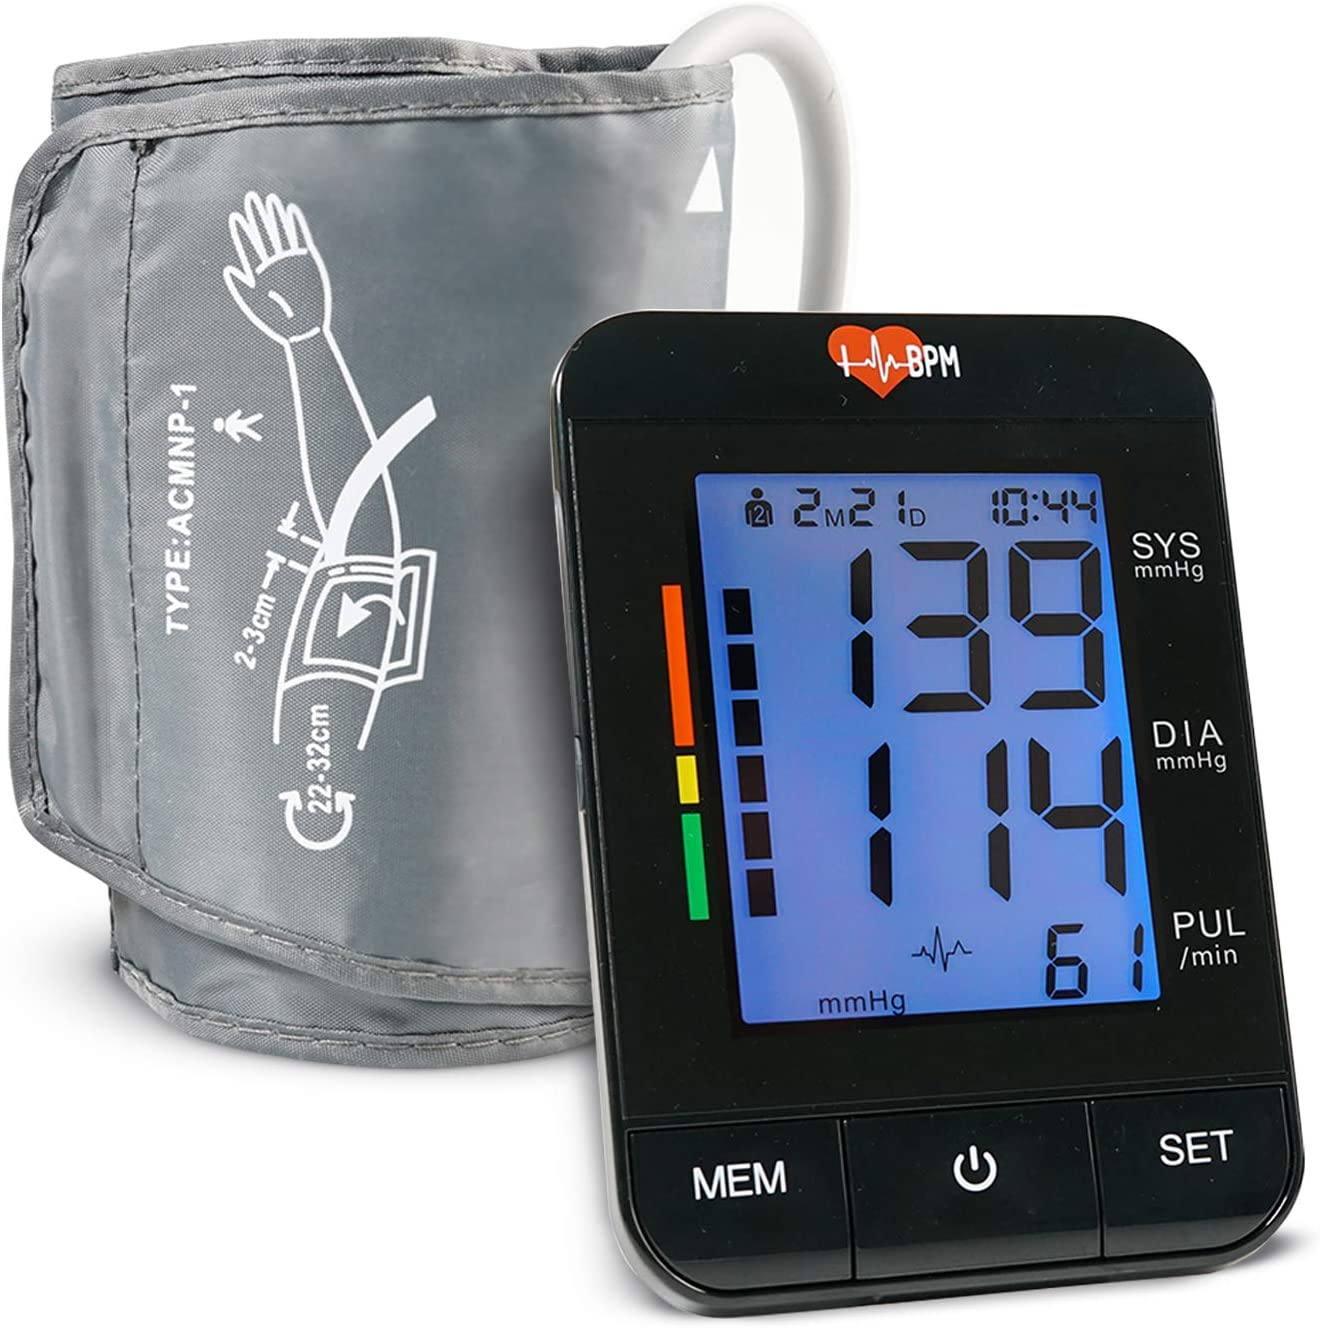 IHeartBPM Blood Pressure Monitor Automatic BP Monitor with Blood Pressure Cuff Heart Rate Monitor for Ages 12 and Up Accurate Digital Blood Pressure Monitor Tracks 2 Users Records for 90 Days